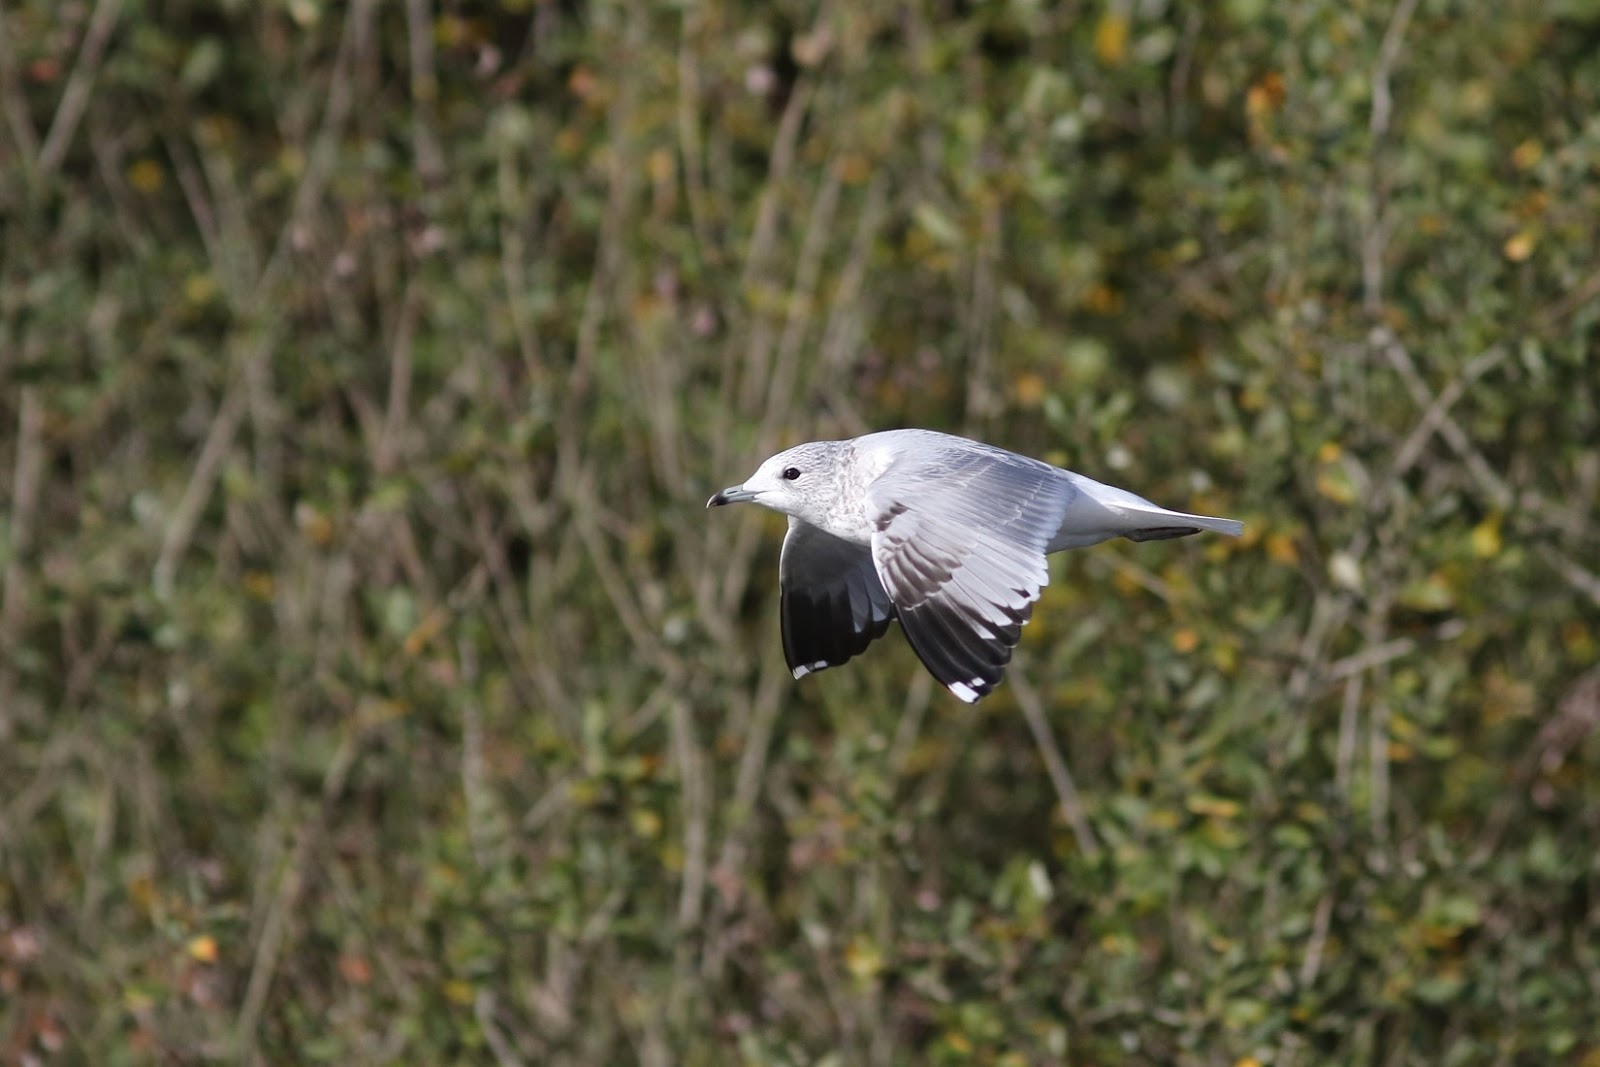 Wanstead Birding: Wrapping up